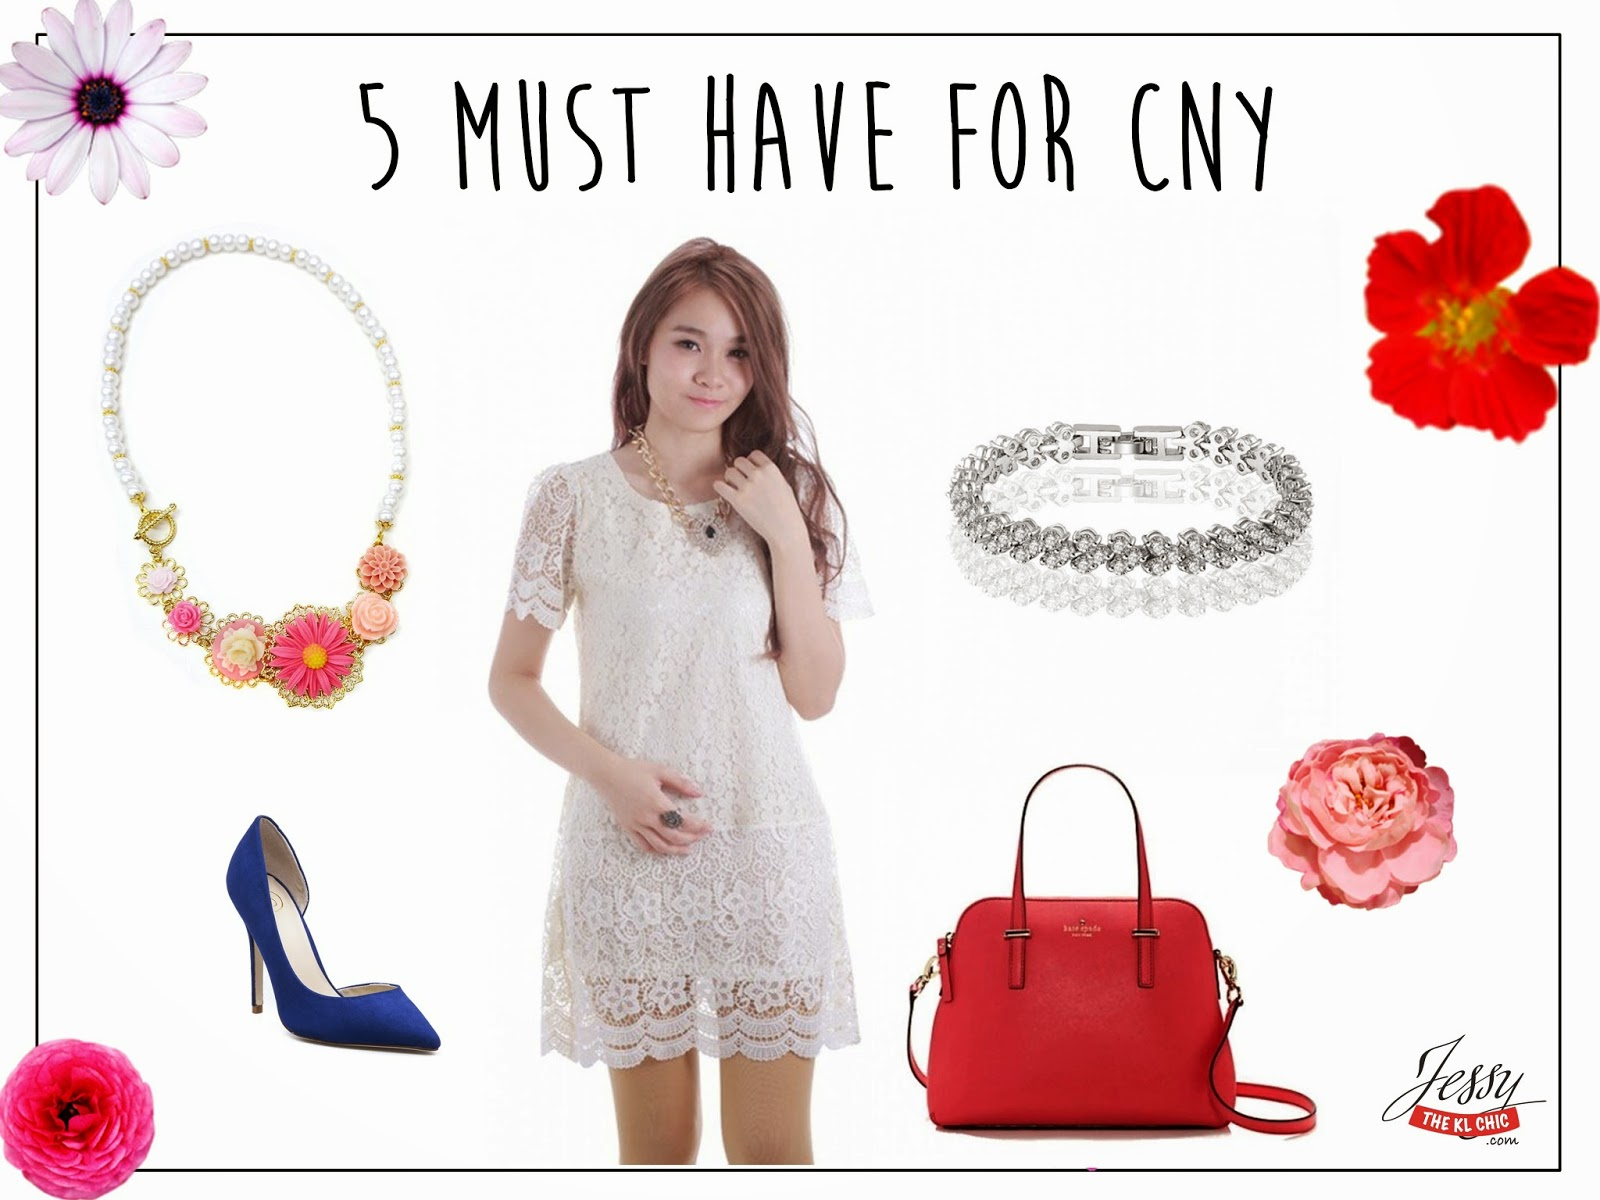 Fashion: 5 Must Have Fashion Items For CNY